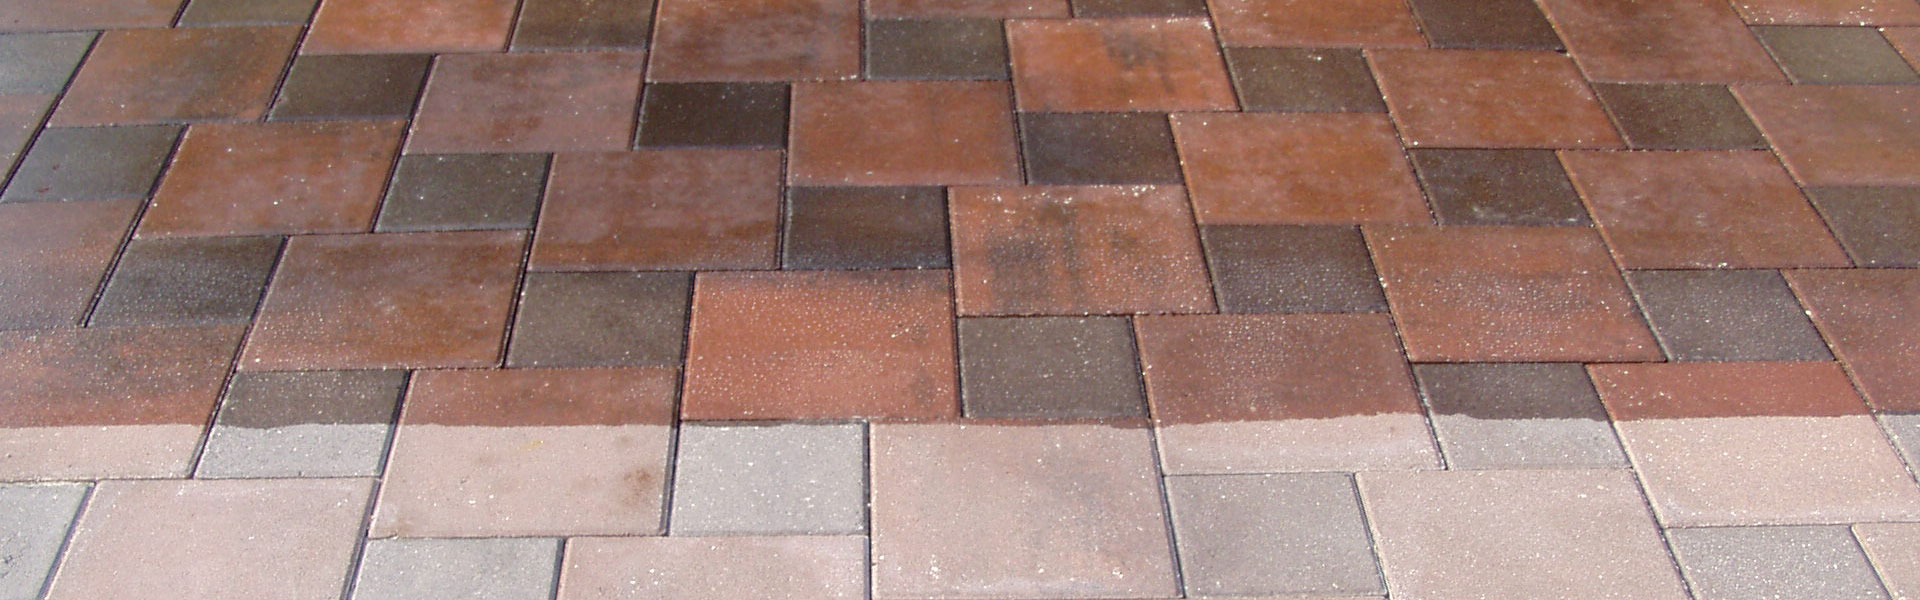 Paver Brick Cleaning & Paver Sealing in Sarasota | Gorilla Kleen